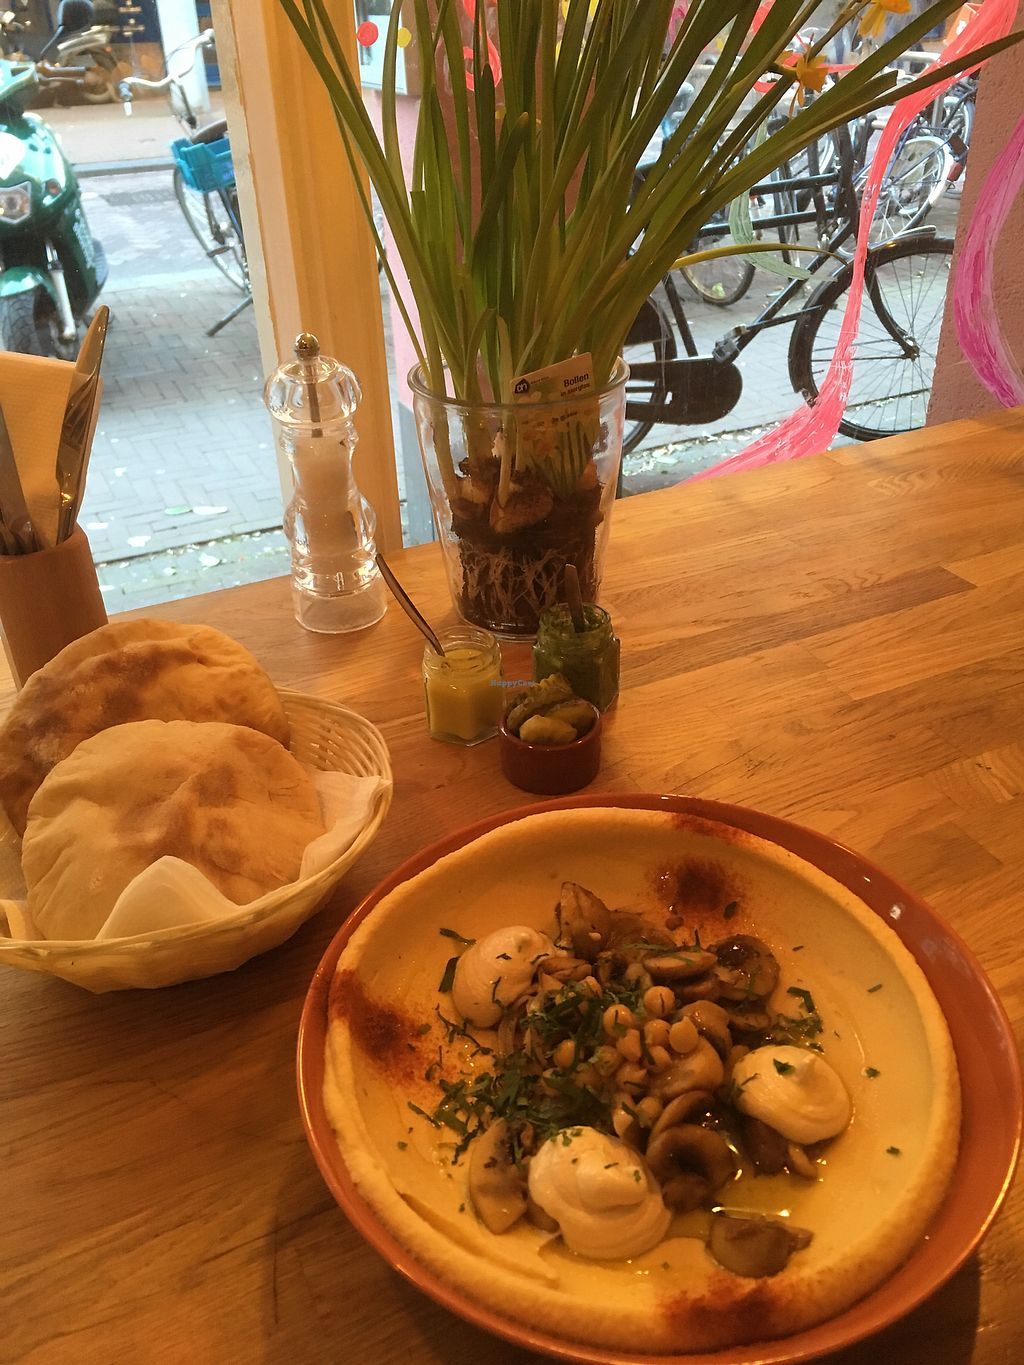 """Photo of De Hummus House - Sint Antoniesbreestraat  by <a href=""""/members/profile/annasdrive"""">annasdrive</a> <br/>Classic hummus with homemade pita <br/> March 21, 2018  - <a href='/contact/abuse/image/59292/373809'>Report</a>"""